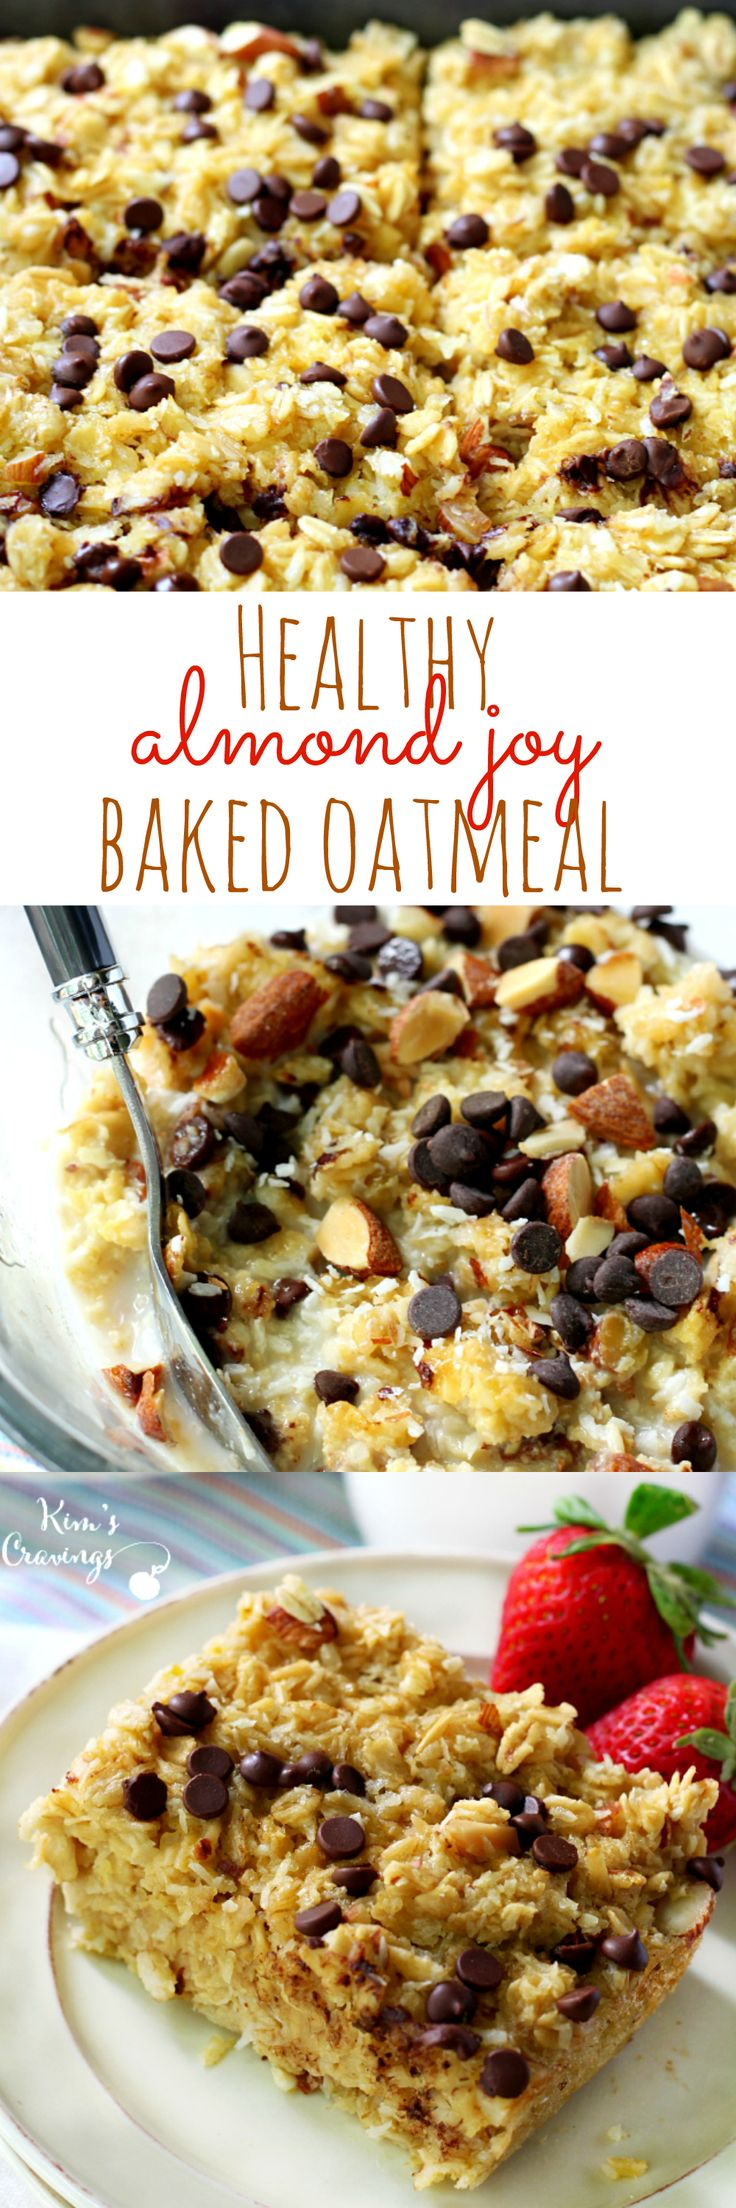 Healthy almond joy baked oatmeal is a fun spin on traditional oatmeal- made with nourishing ingredients, but tastes like your favorite candy bar! #ad